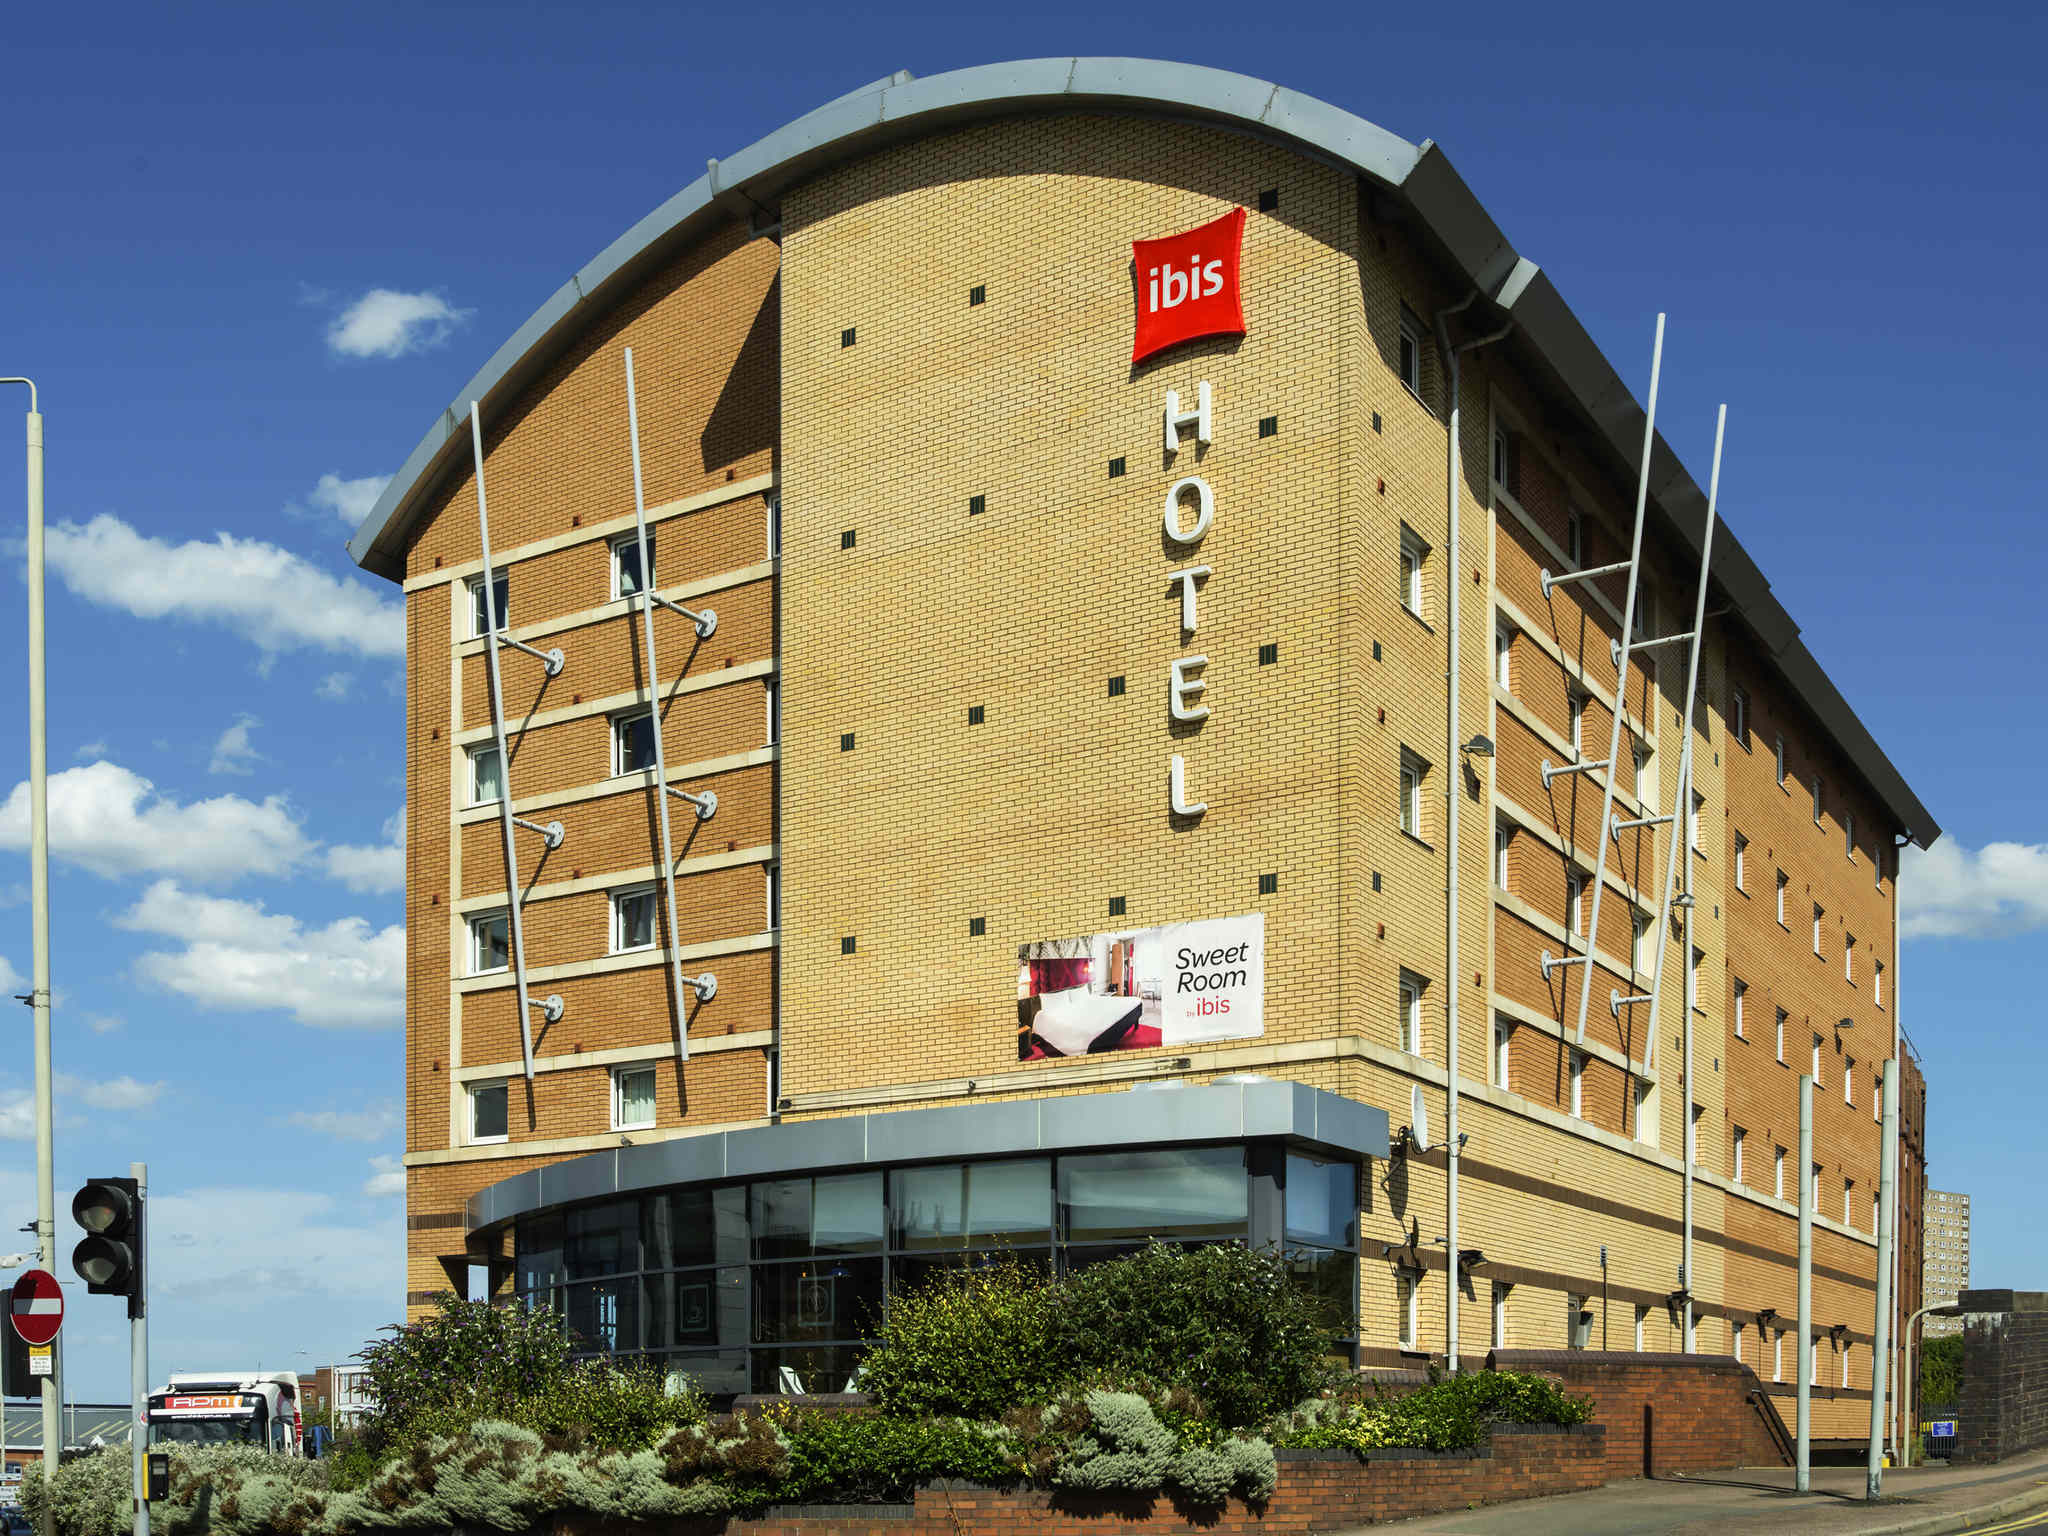 Hotel – ibis Leicester City